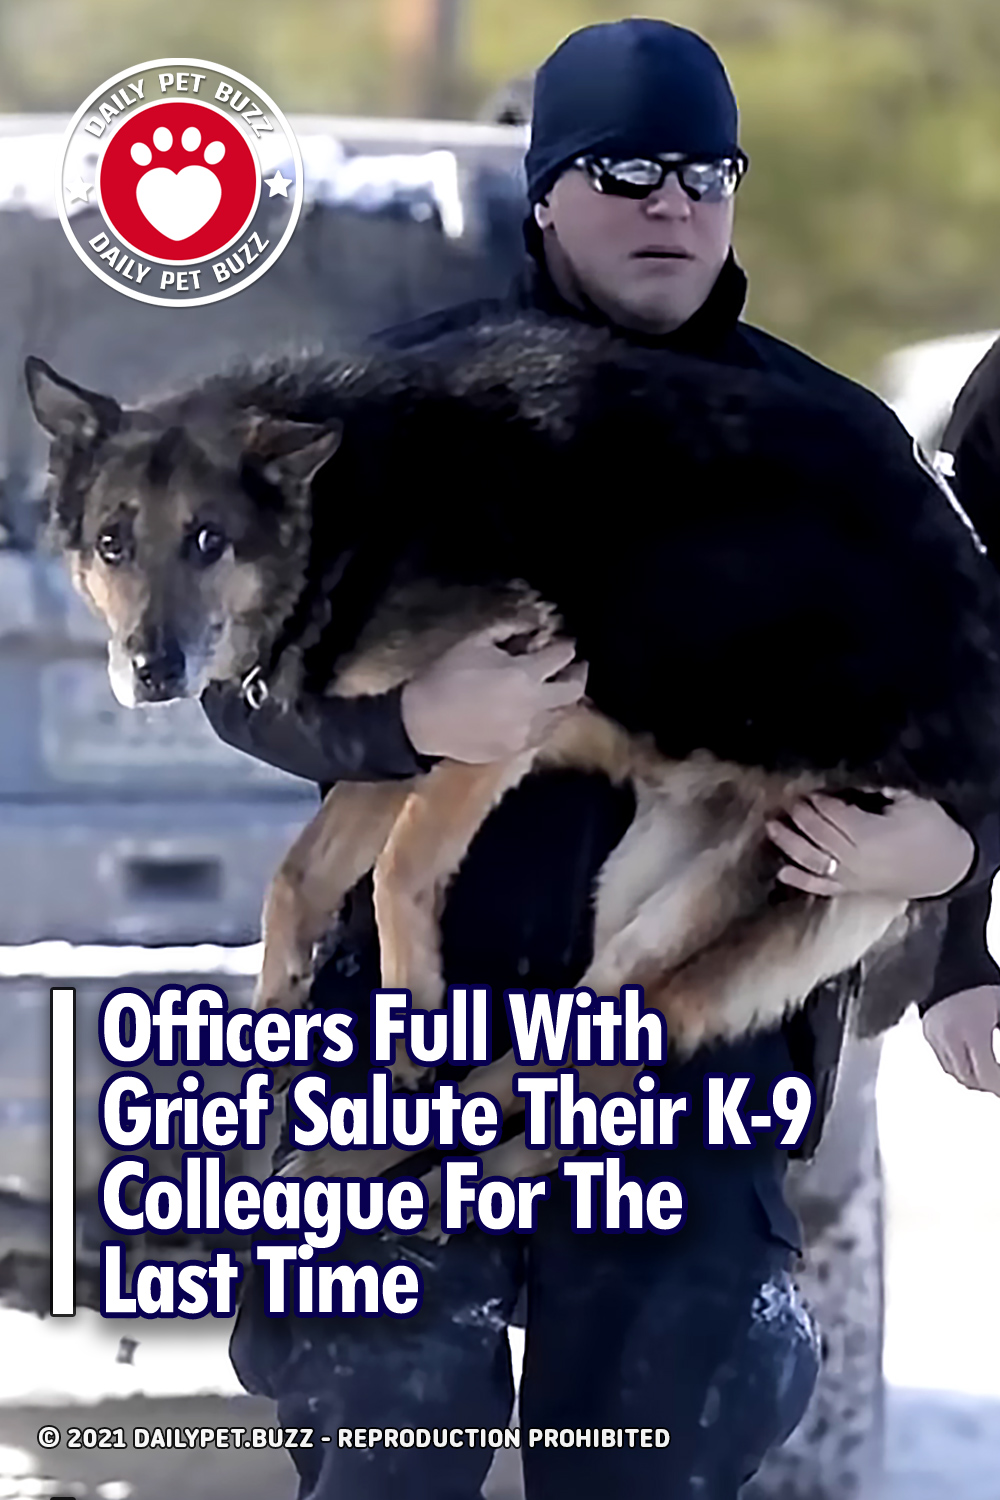 Officers Full With Grief Salute Their K-9 Colleague For The Last Time